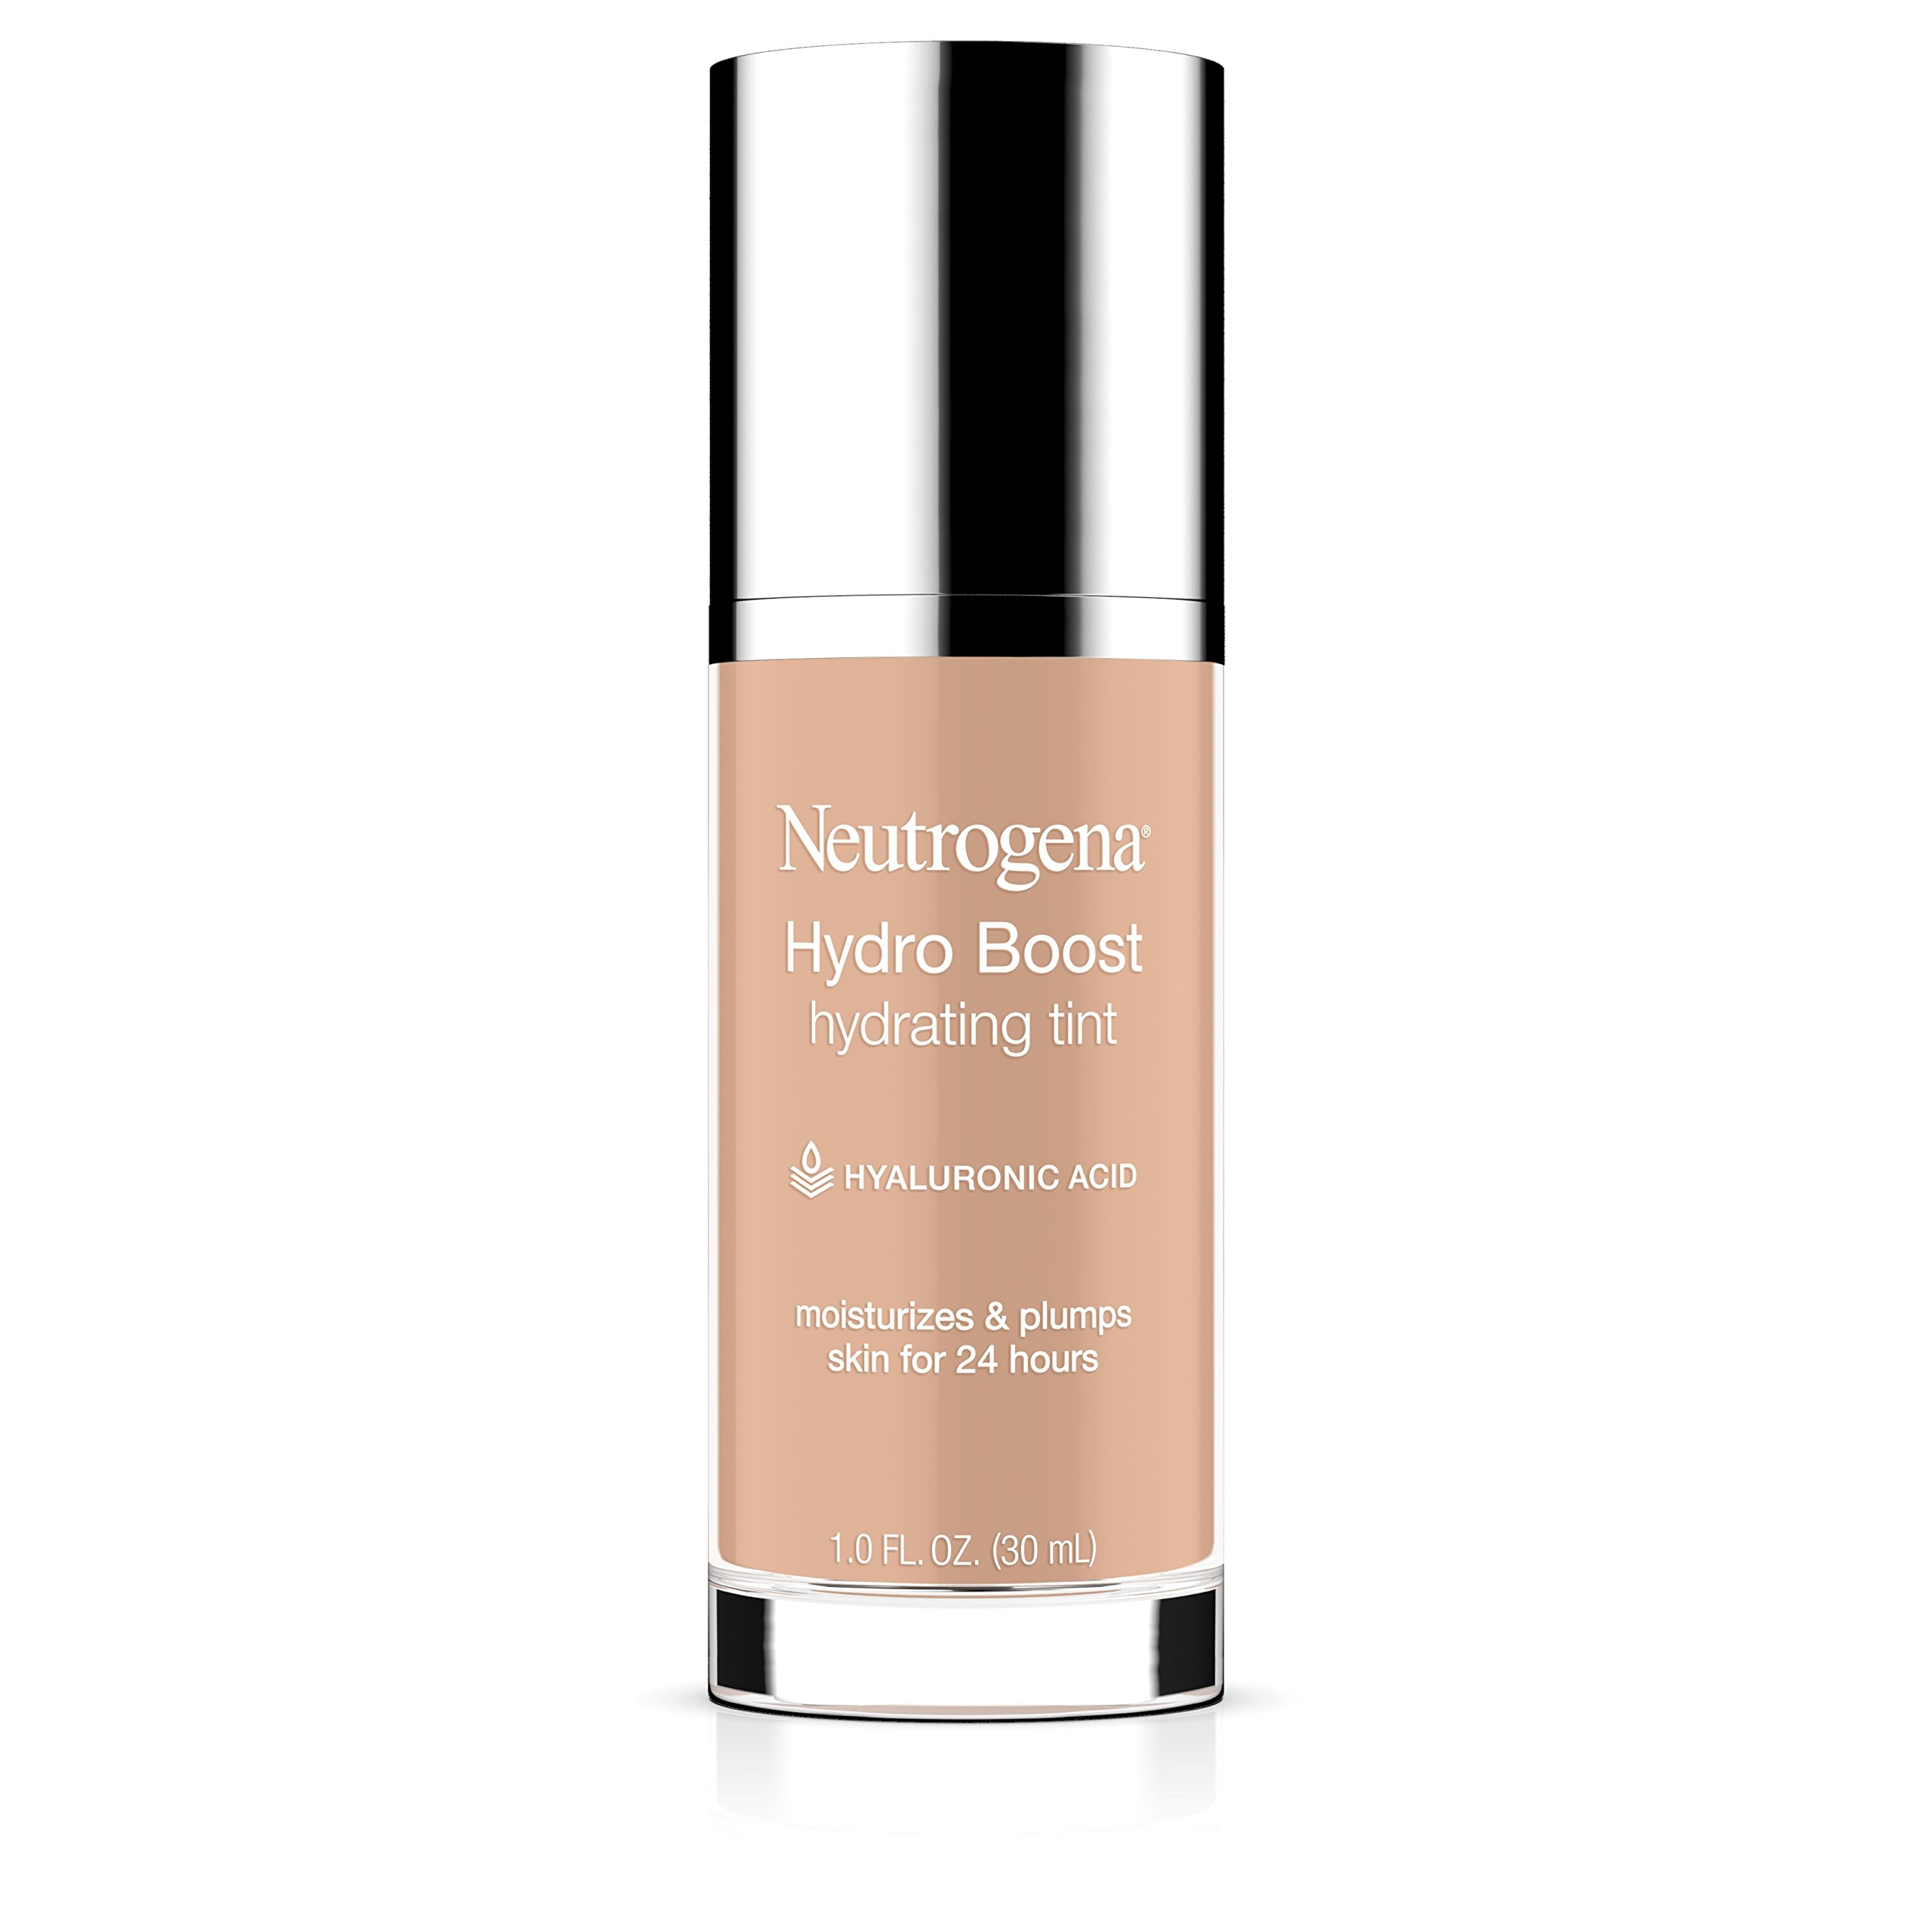 Neutrogena Hydro Boost Hydrating Tint, 1.0 Fl. Oz. 30 / Buff